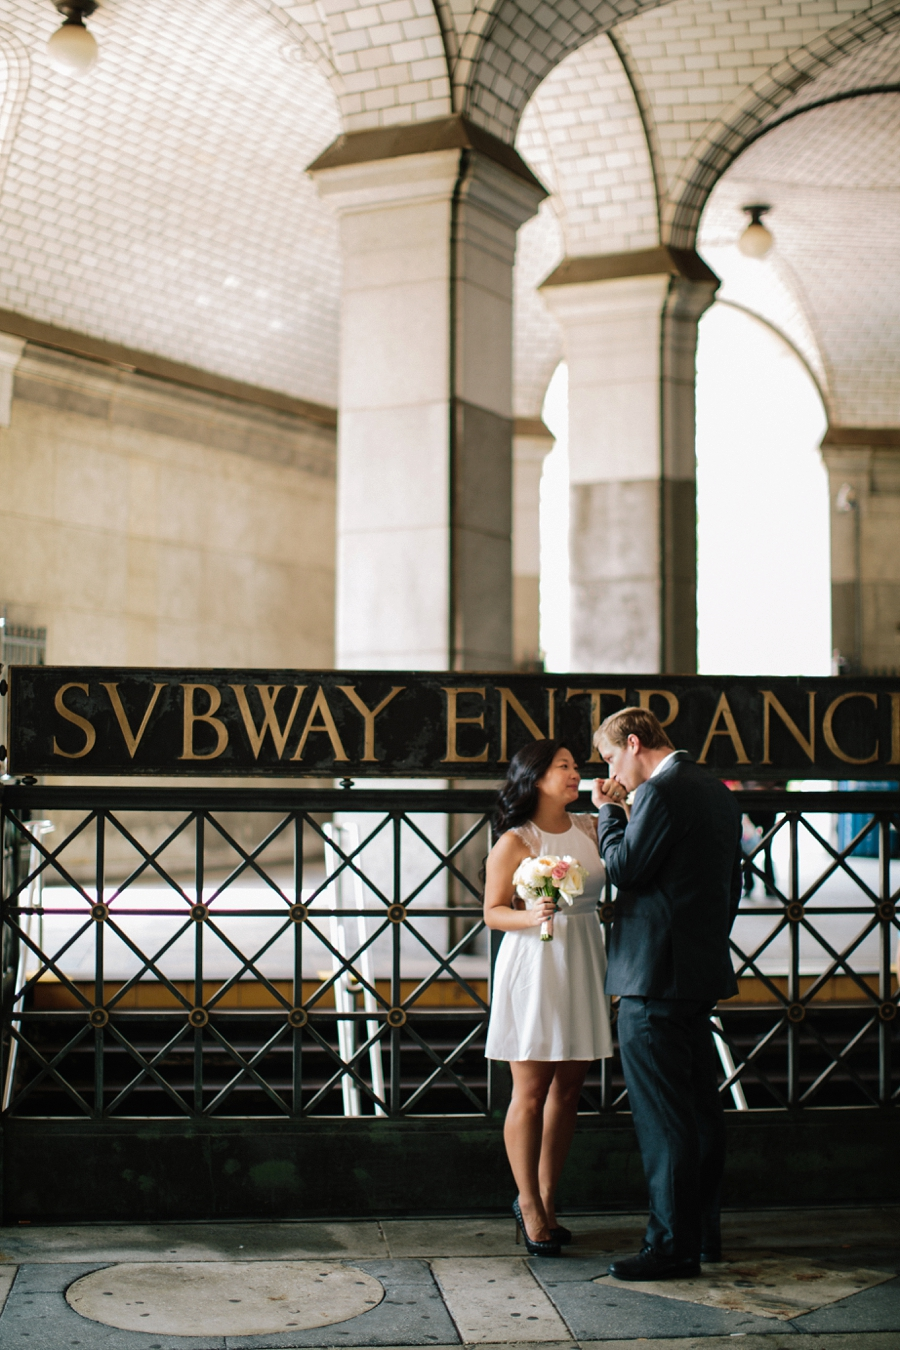 elopement-wedding-photographer-ny-nj-destination_0022.jpg